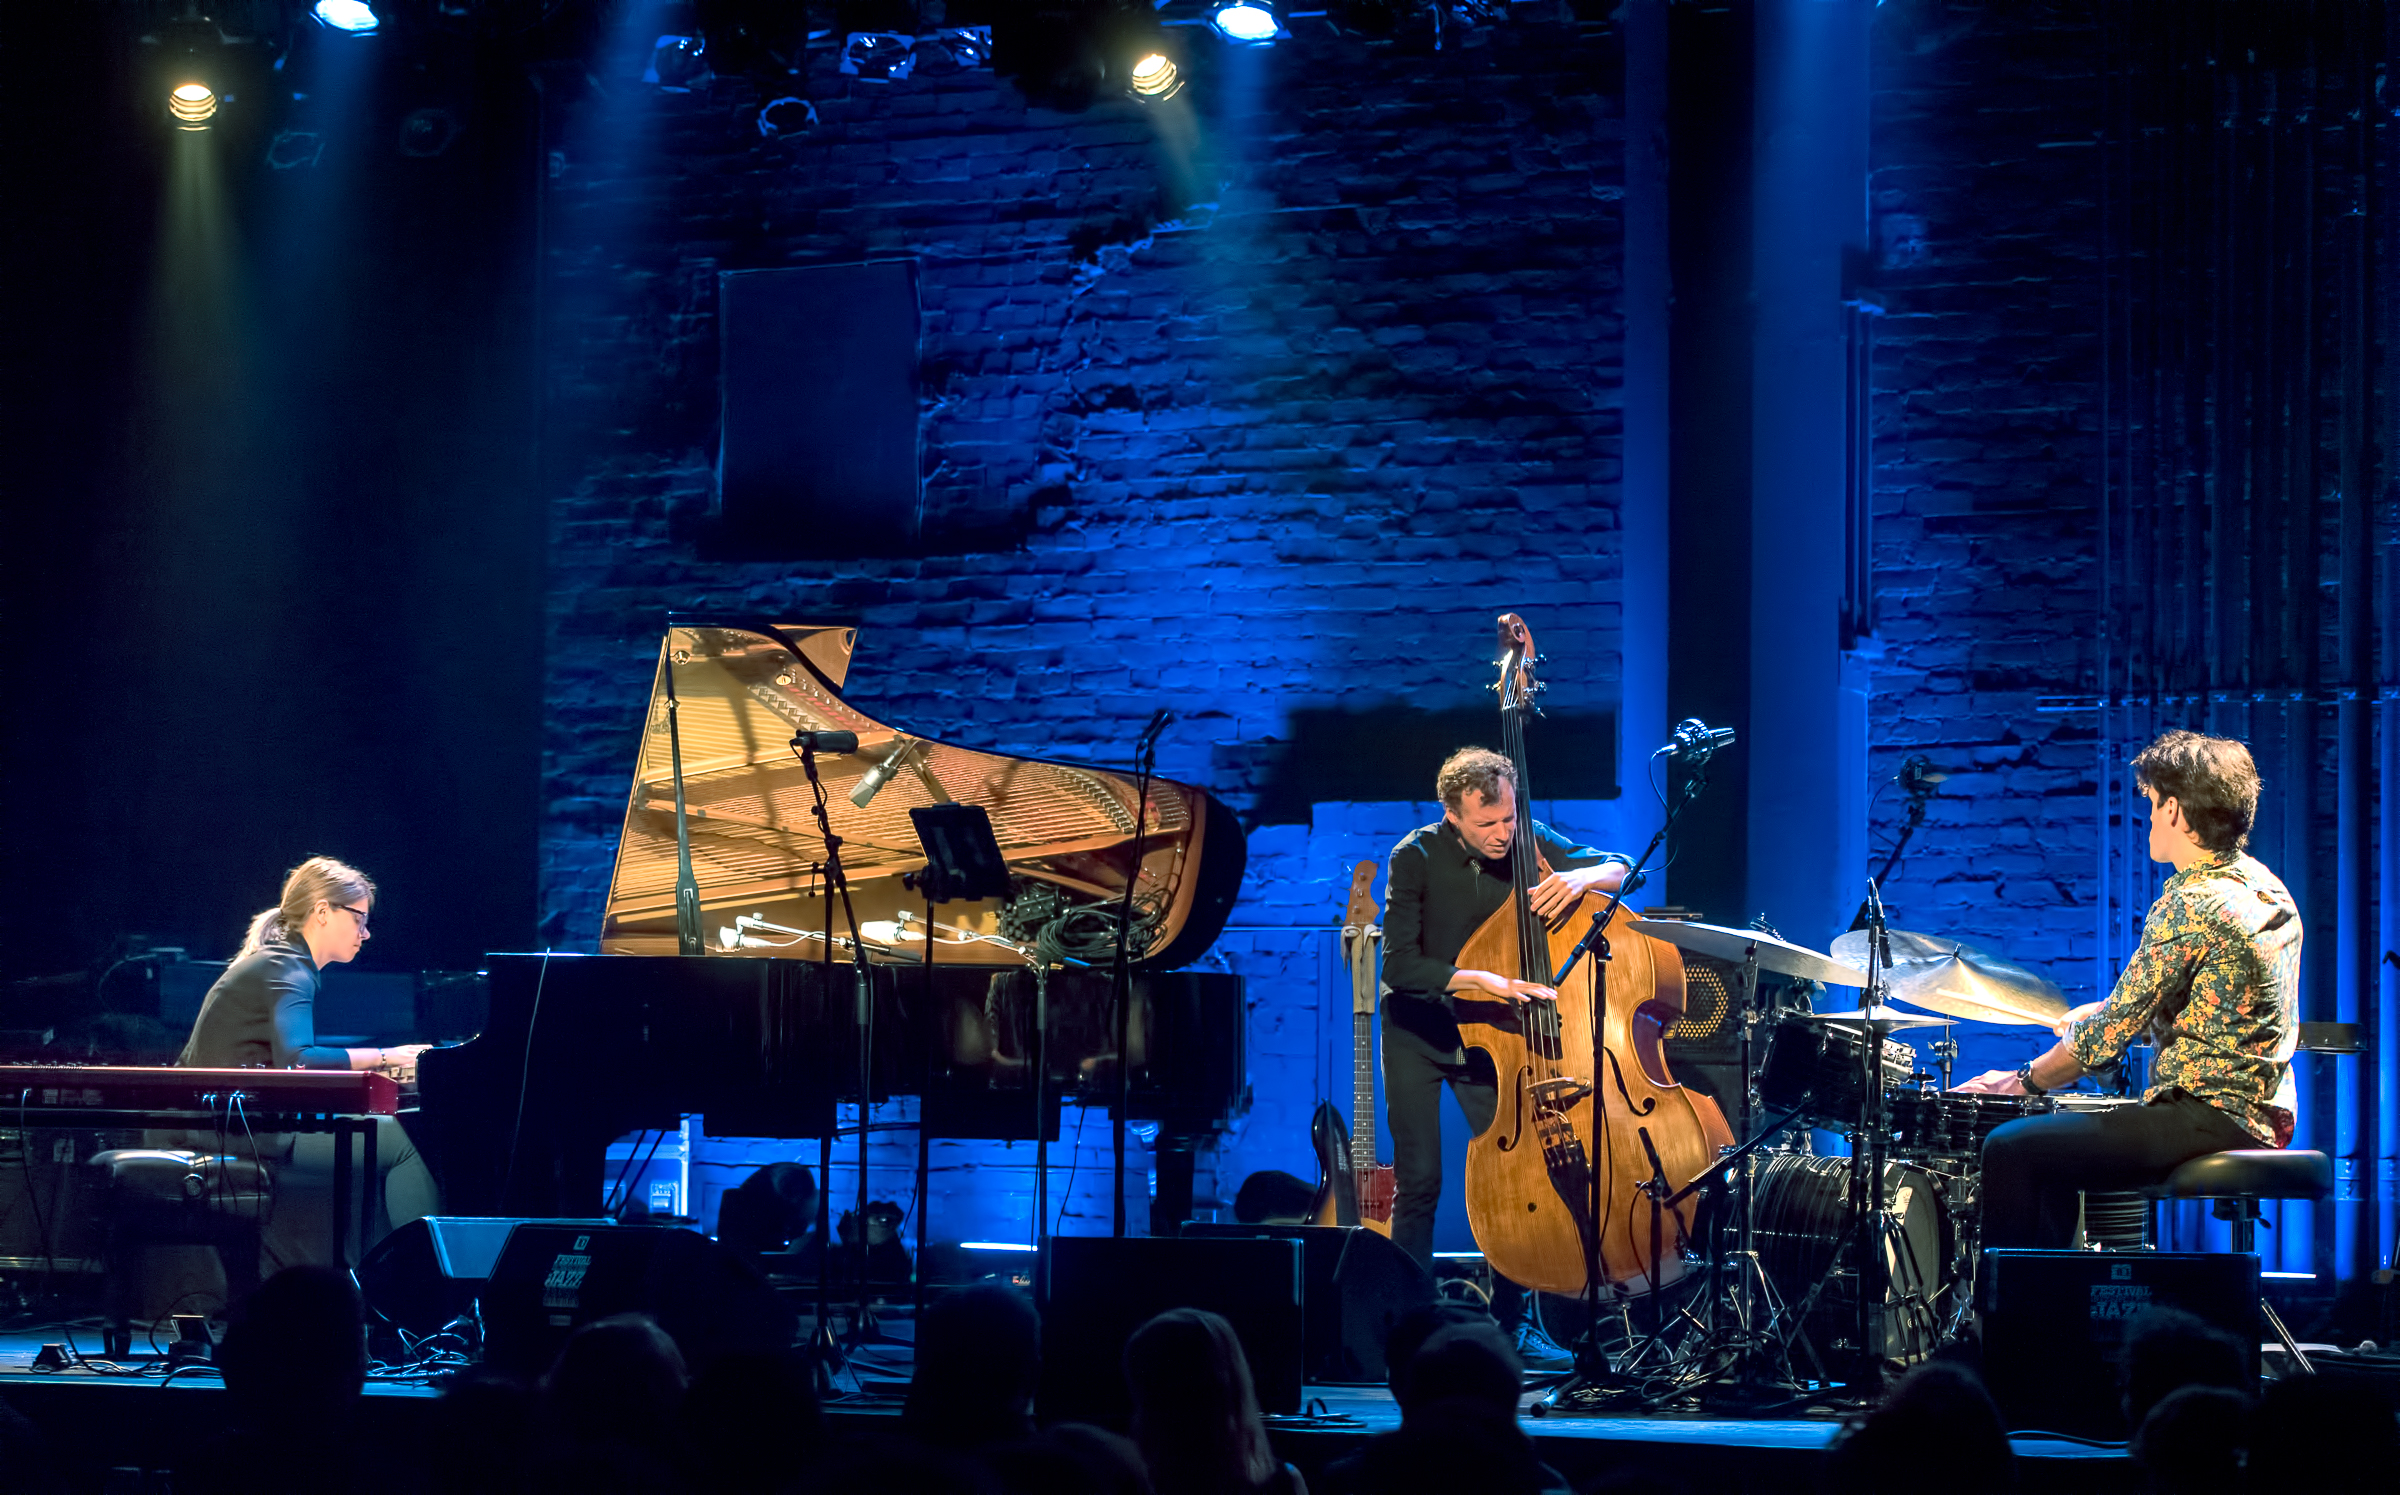 Emie Rioux-Roussel, Nicolas Bedard and Dominic Cloutier with the Emie Rioux-Roussel Trio at The Montreal International Jazz Festival 2018